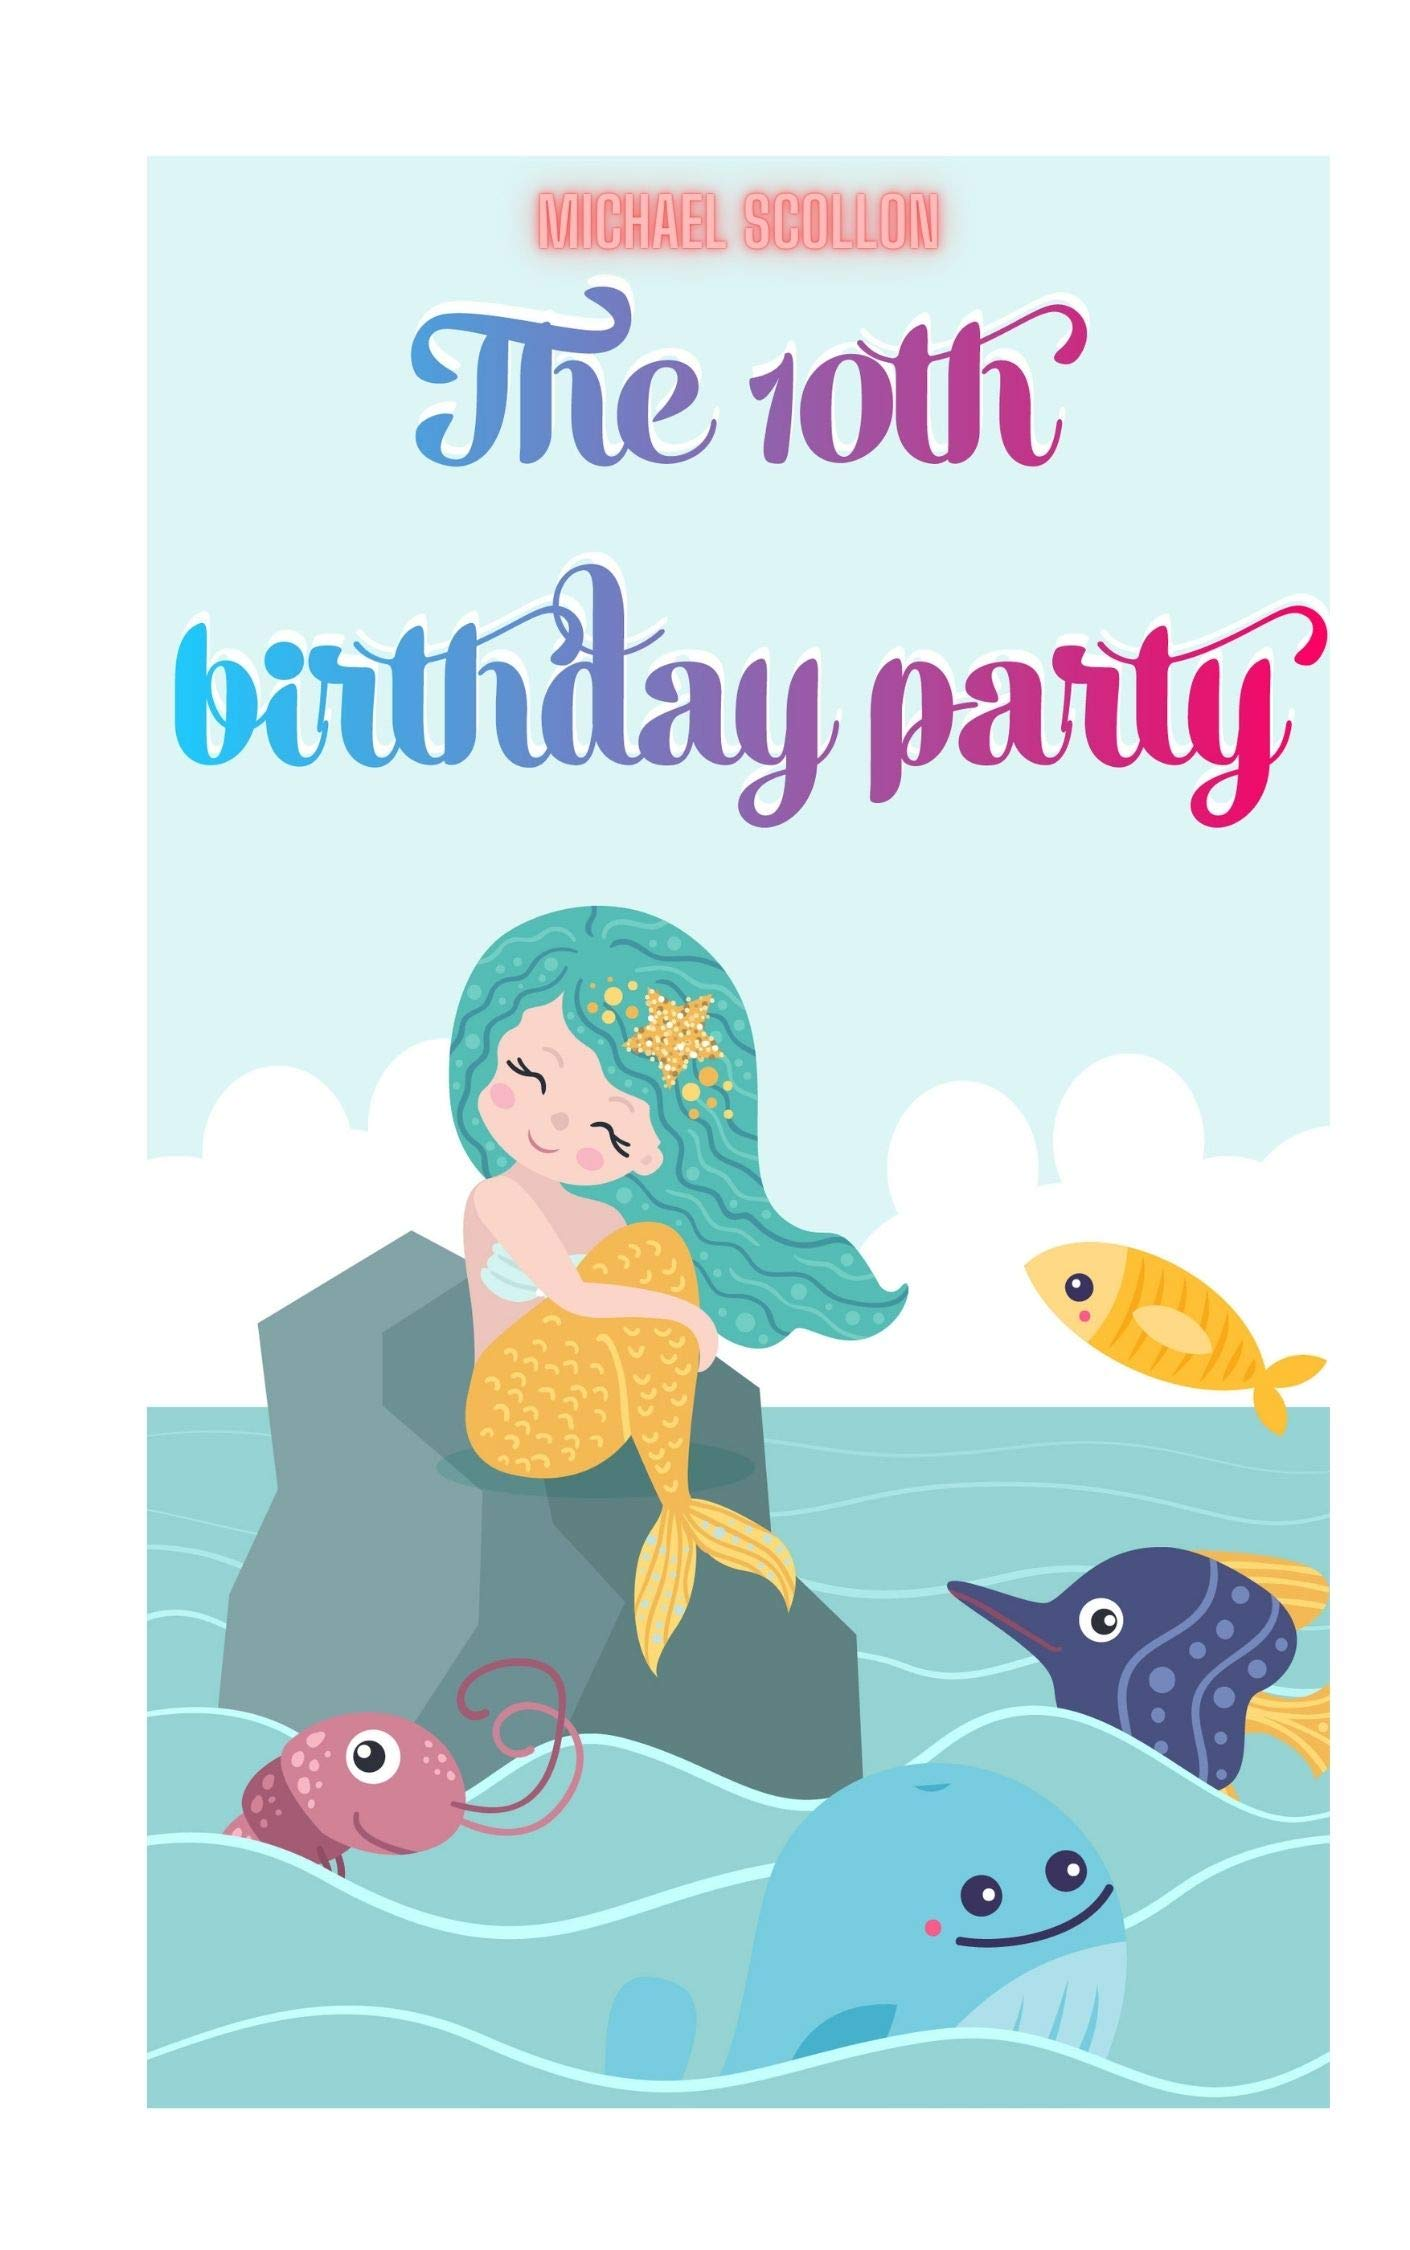 The 10th birthday party: Free Stories For Kids Ages 2-8 (Kids Books, Children's Books - Free Stories)